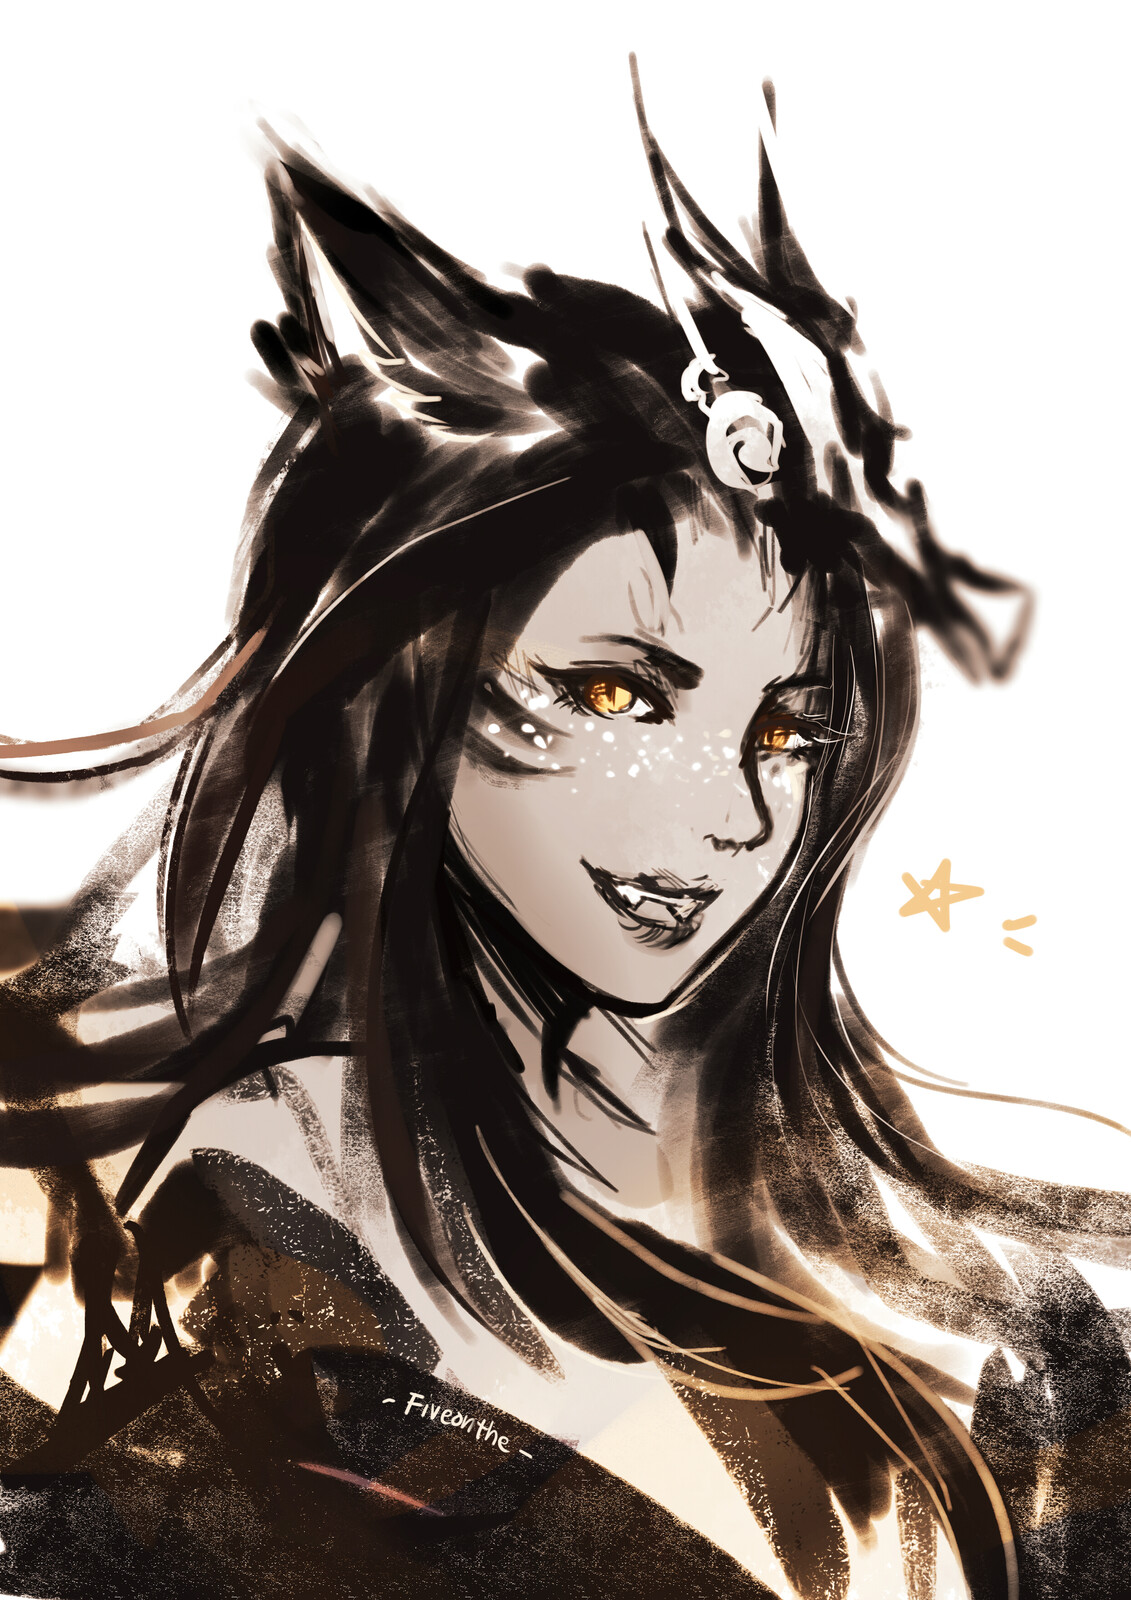 ffxiv. b&w Sketches compilation.